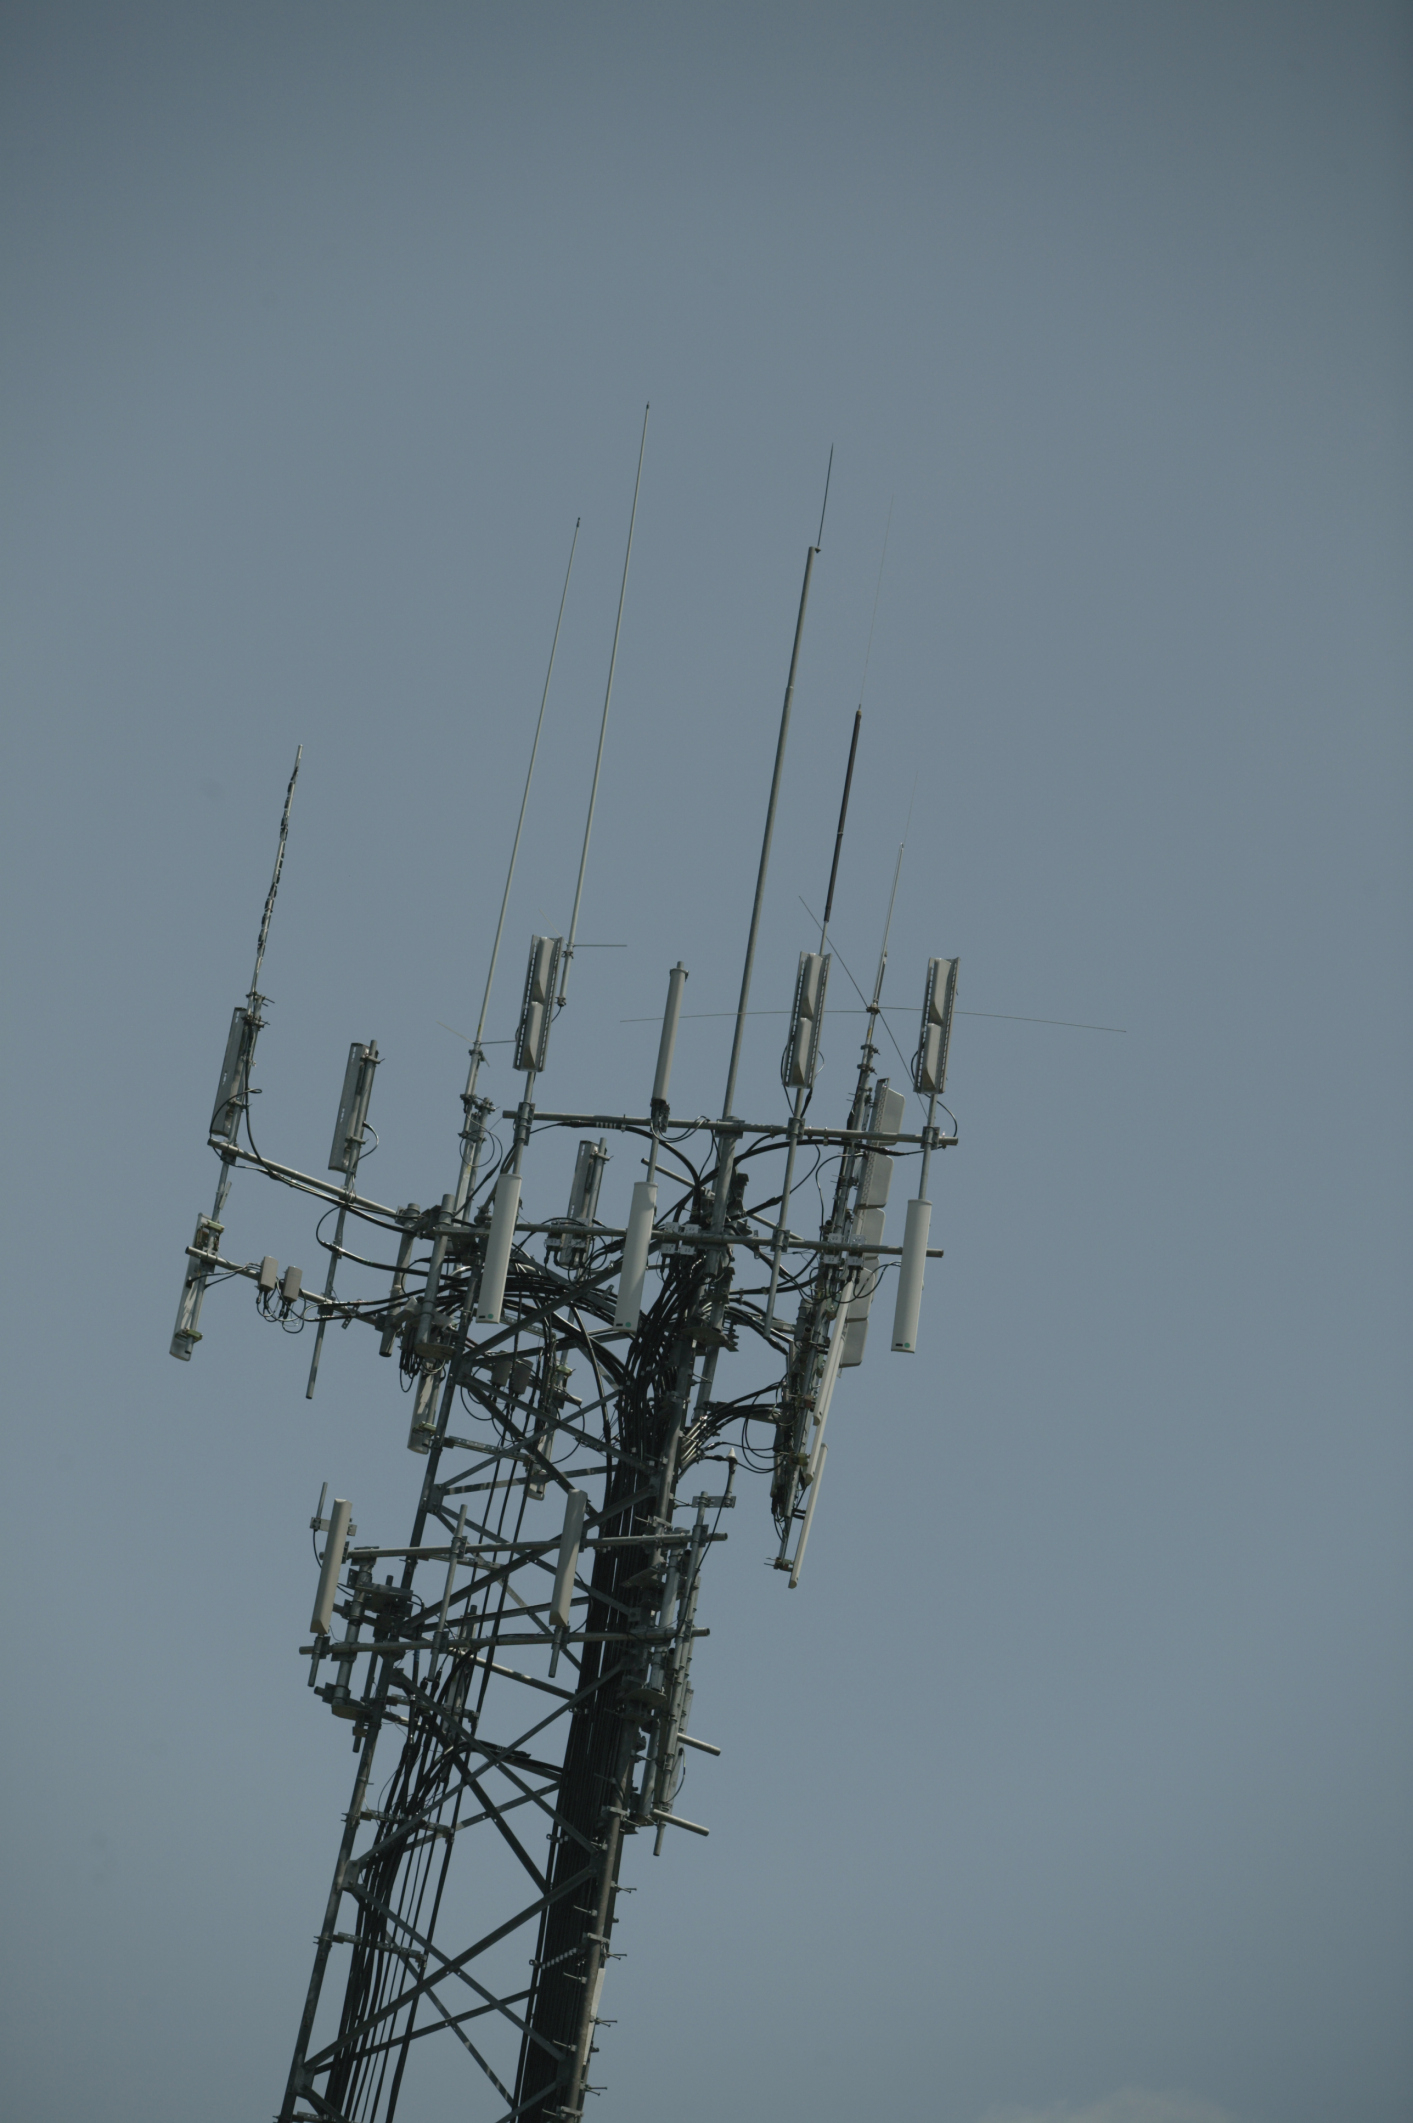 How to Update AT&T Cell Phones to New Towers | It Still Works